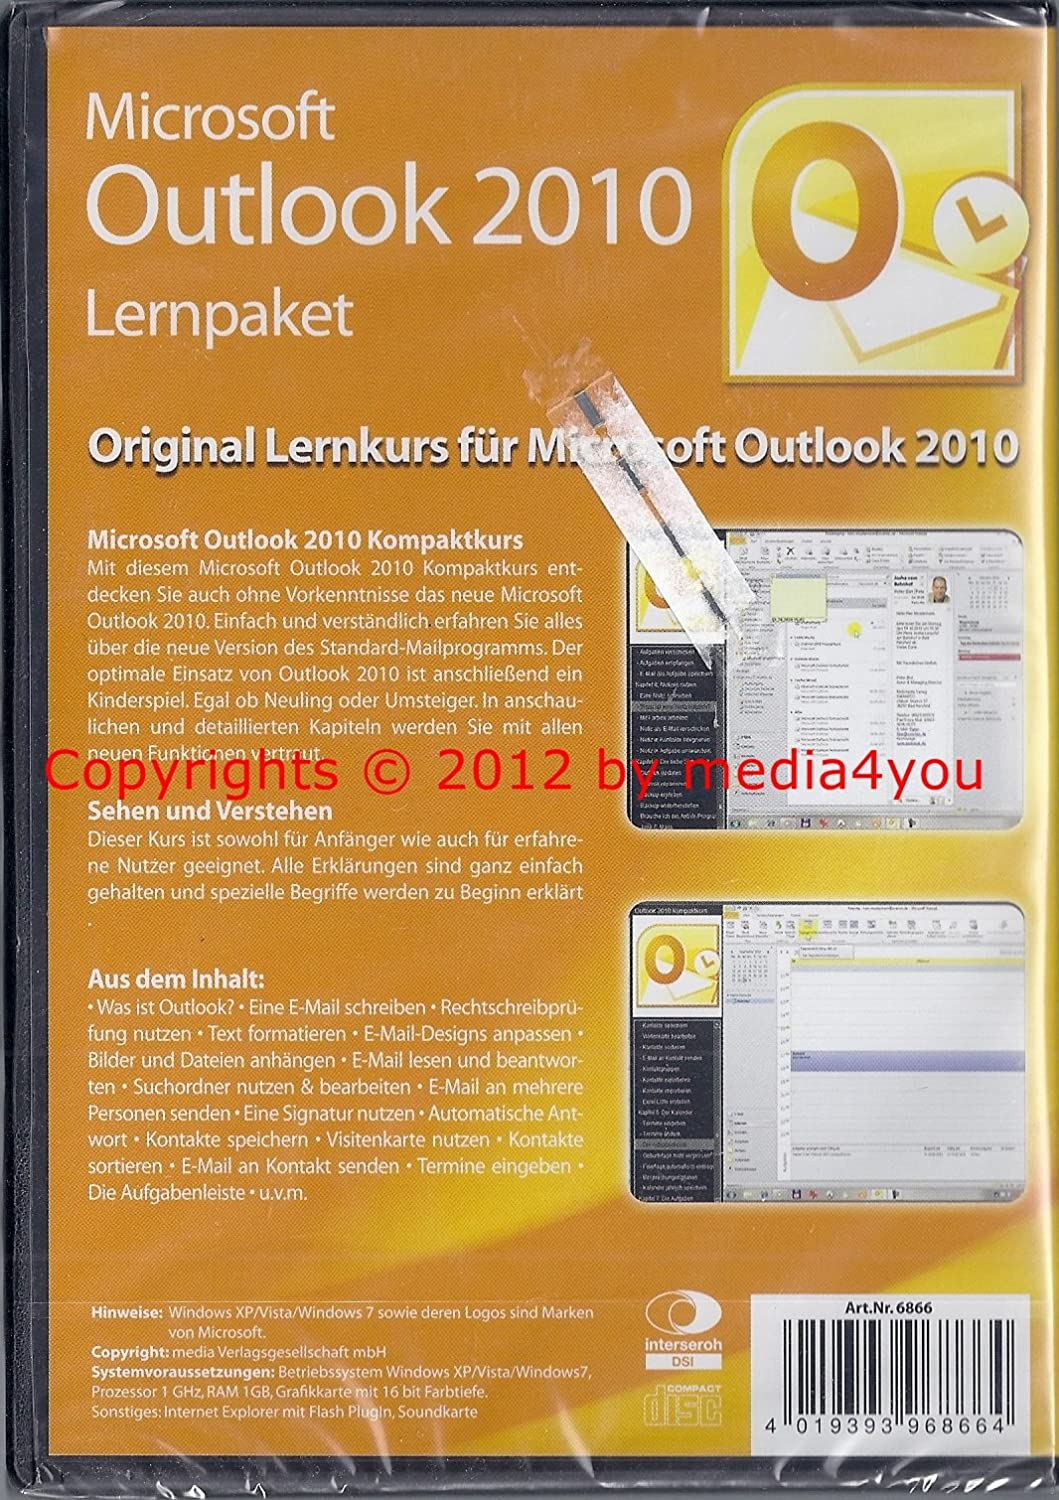 Microsoft Outlook 2010 Lernsoftware Amazon De Elektronik